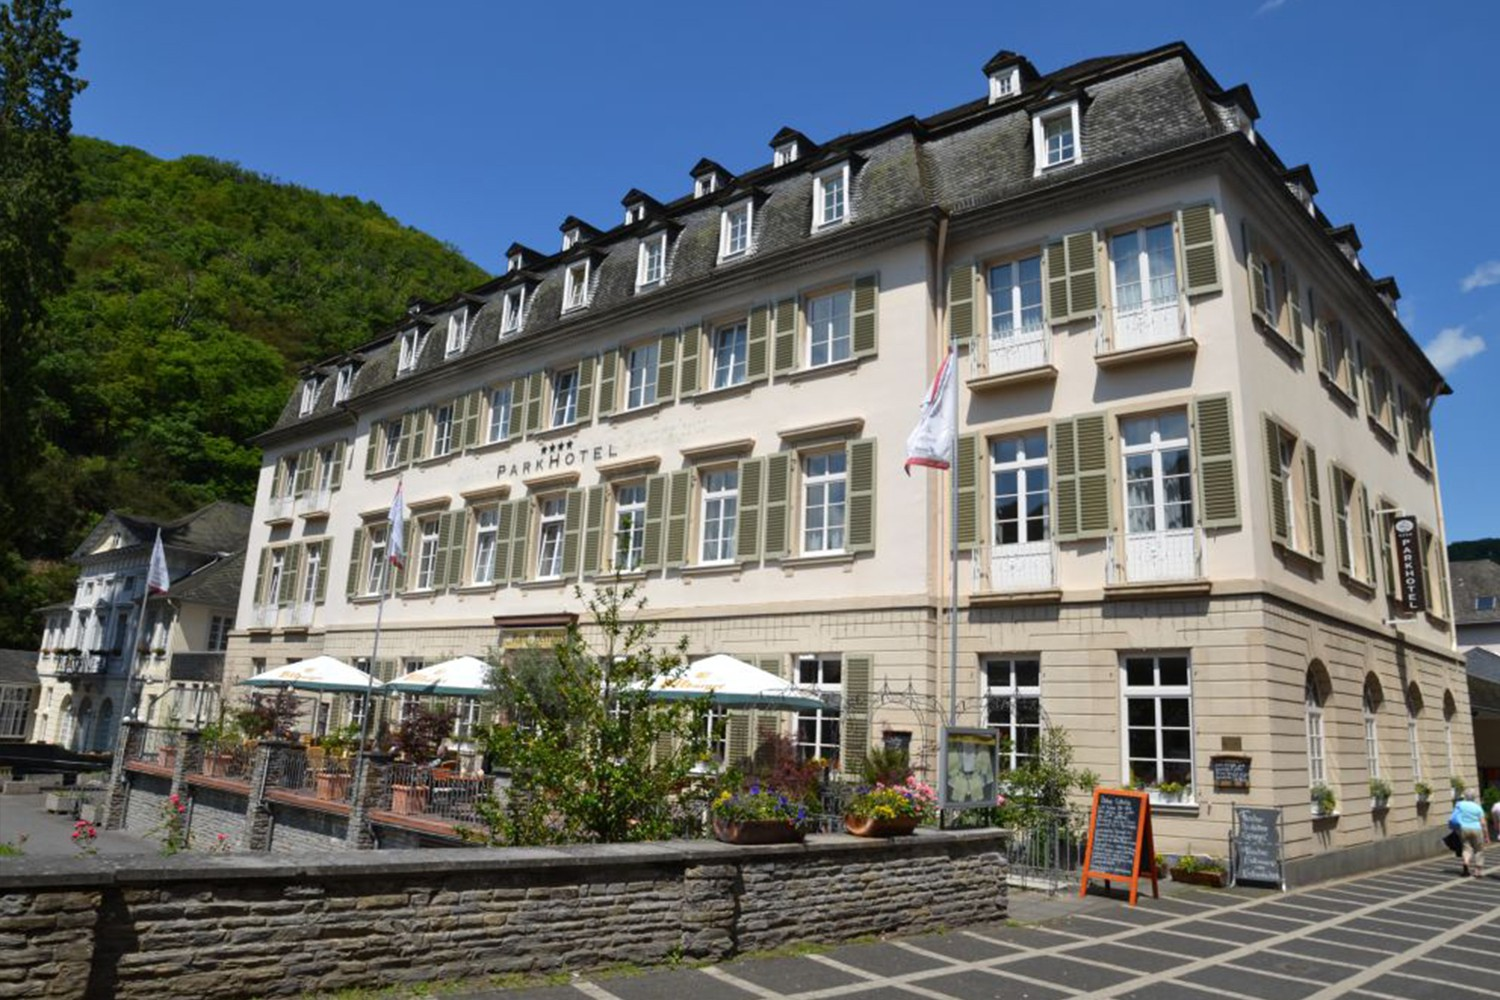 3 days on the Mosel at the Parkhotel Bad Bertrich